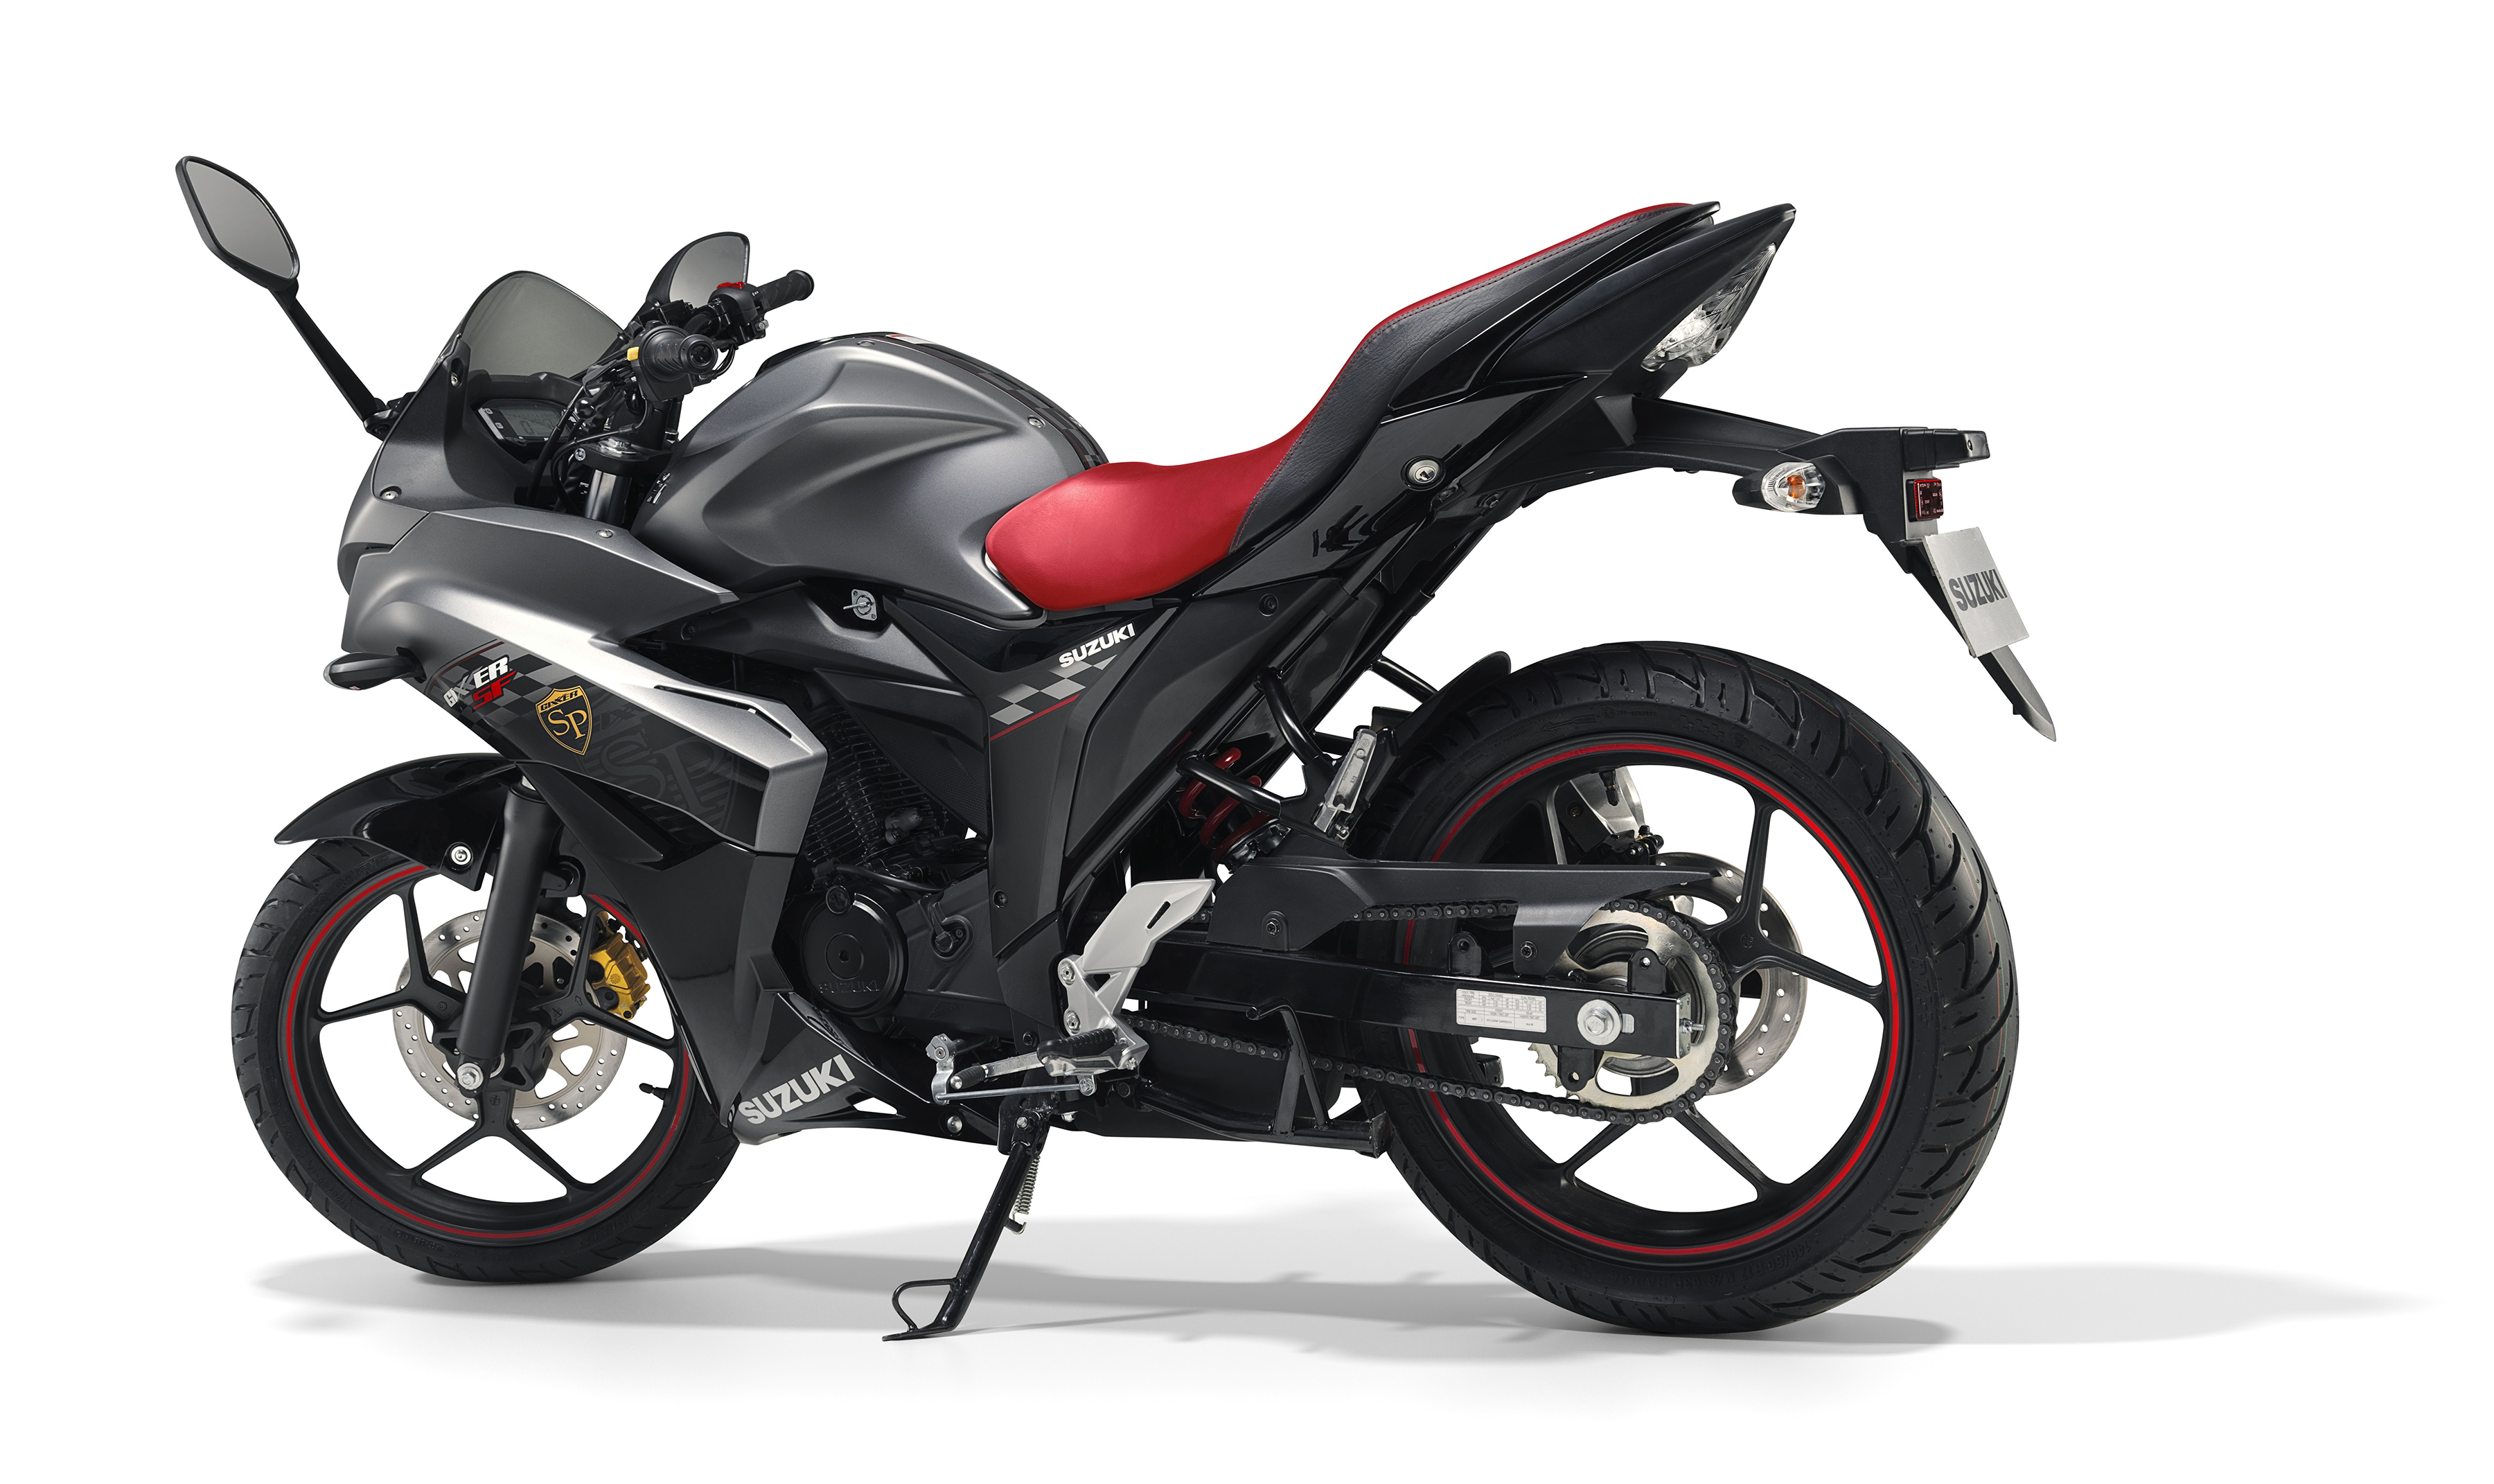 Suzuki Gixxer Sp And Gixxer Sf Sp Special Edition Debuts